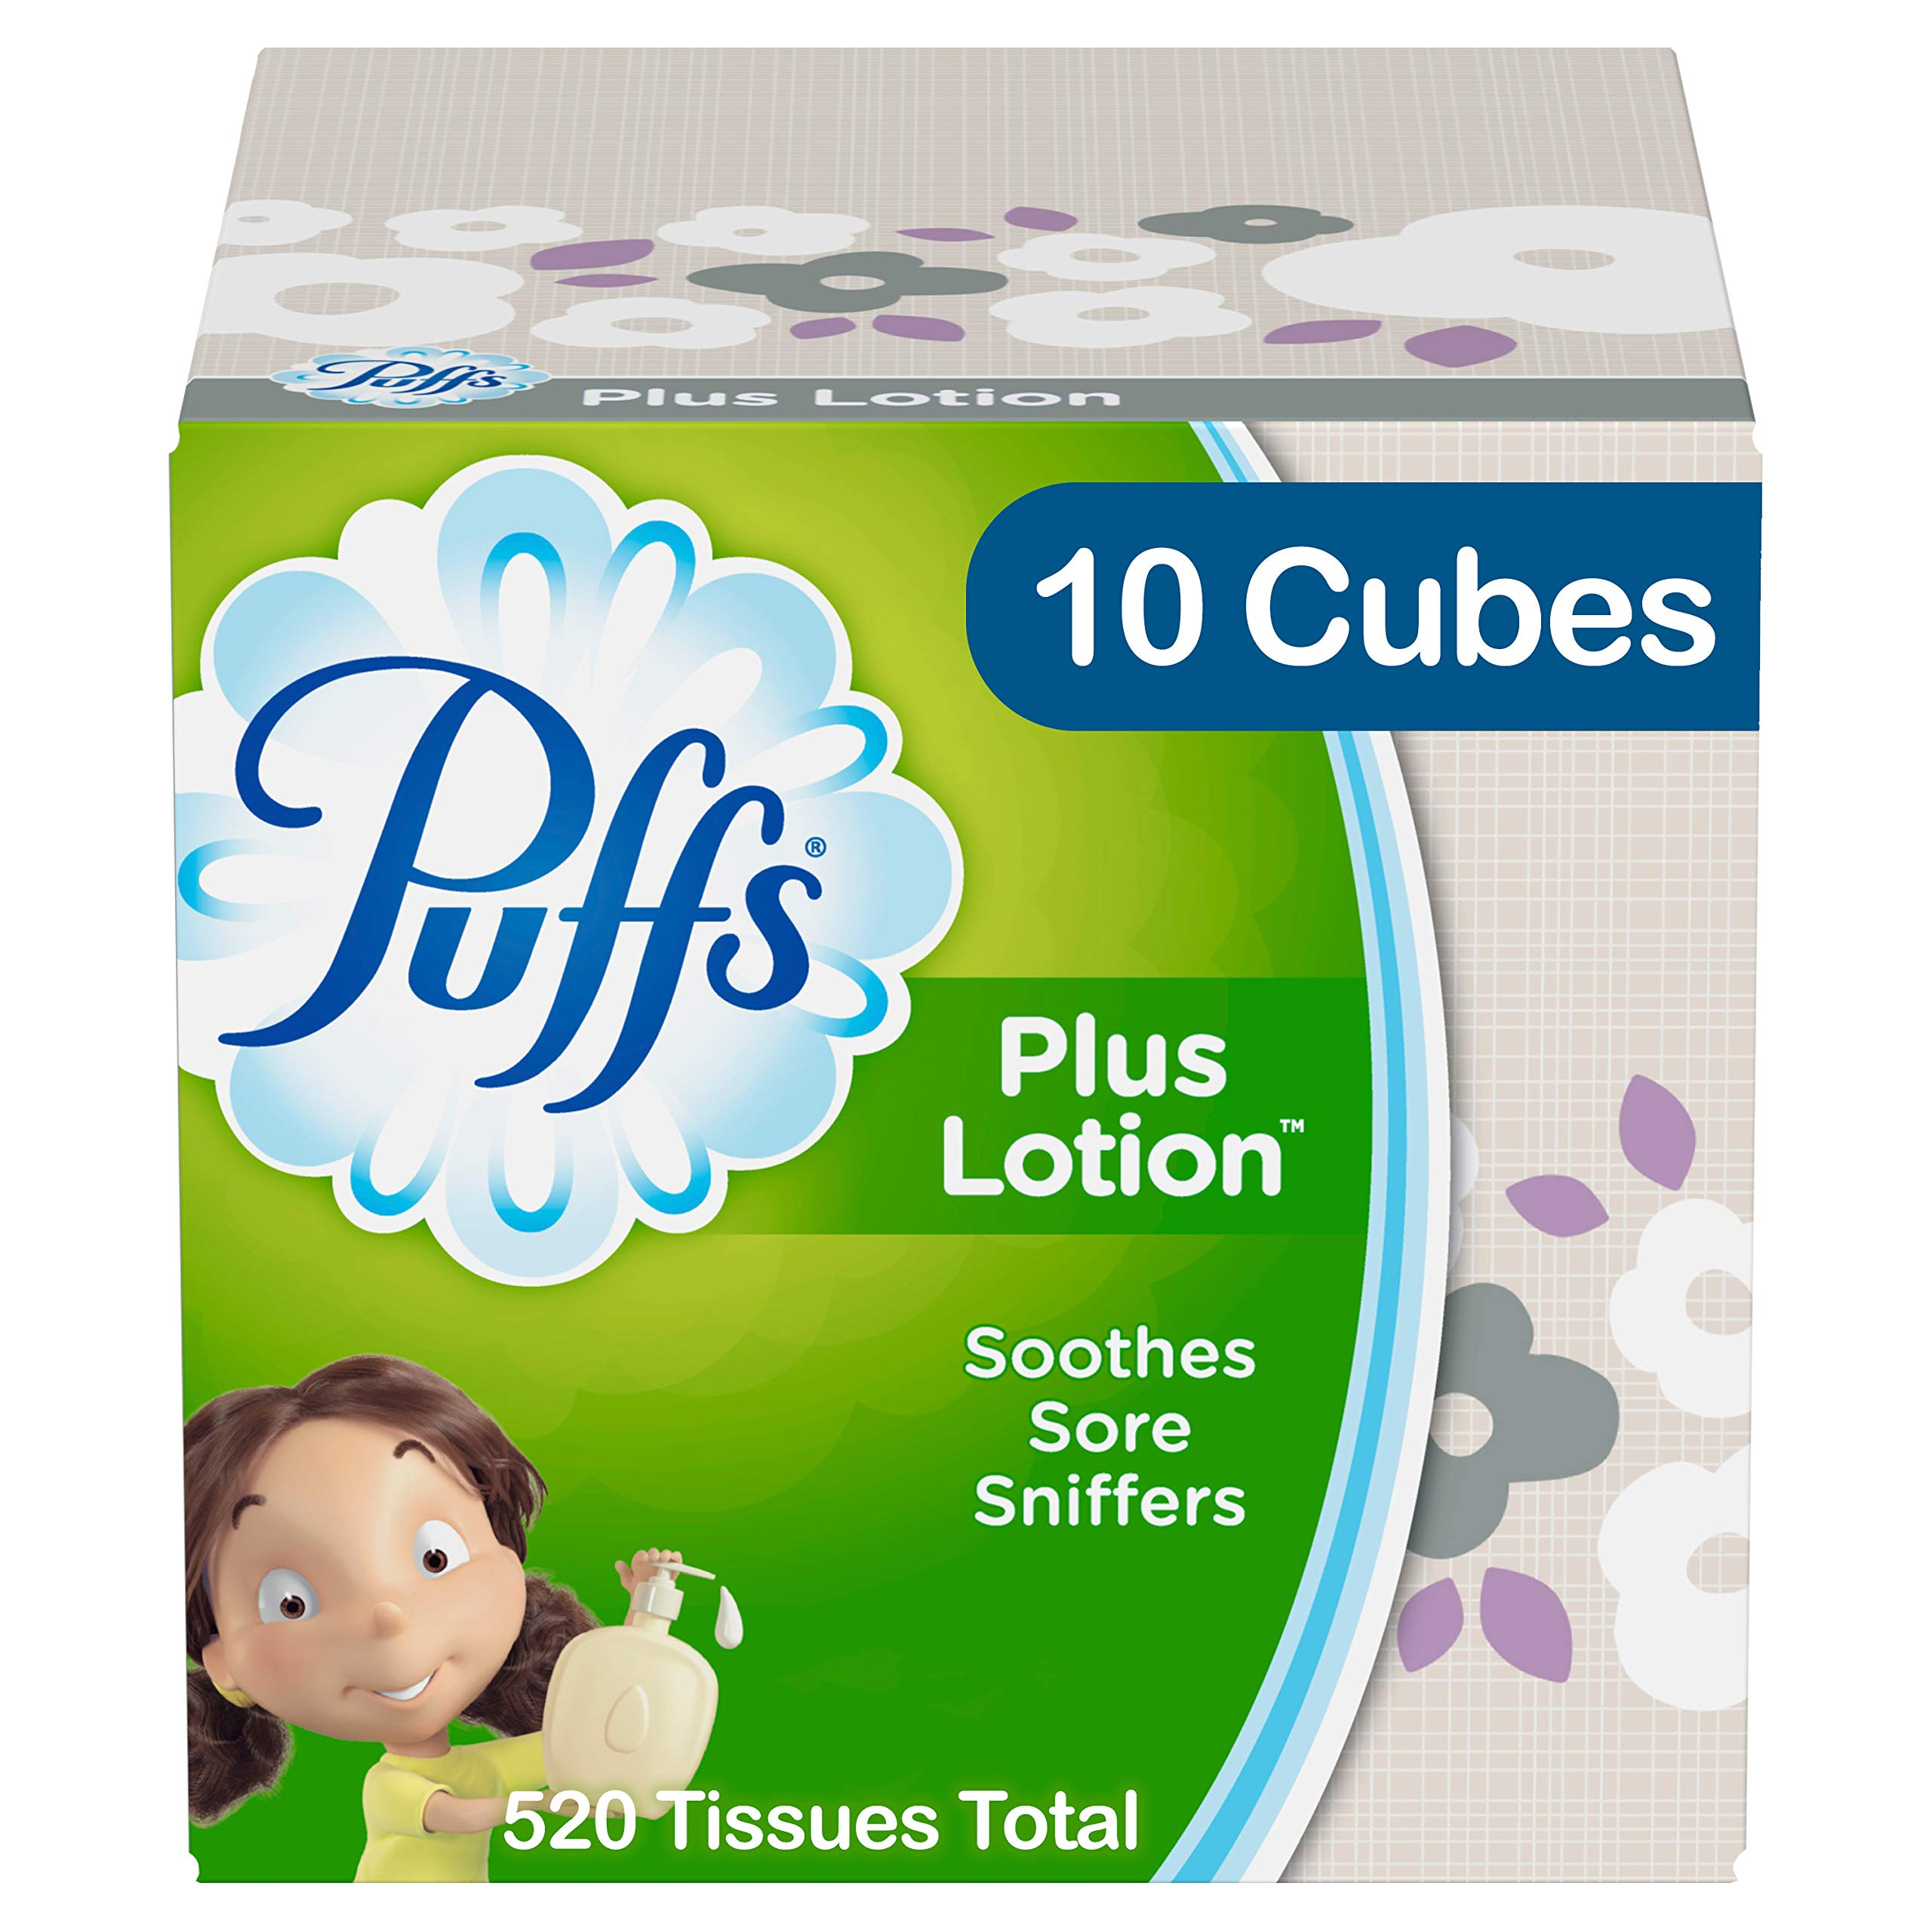 Puffs Plus Lotion Facial Tissues, 10 Cubes, 52 Tissues per Cube by Puffs (Image #1)